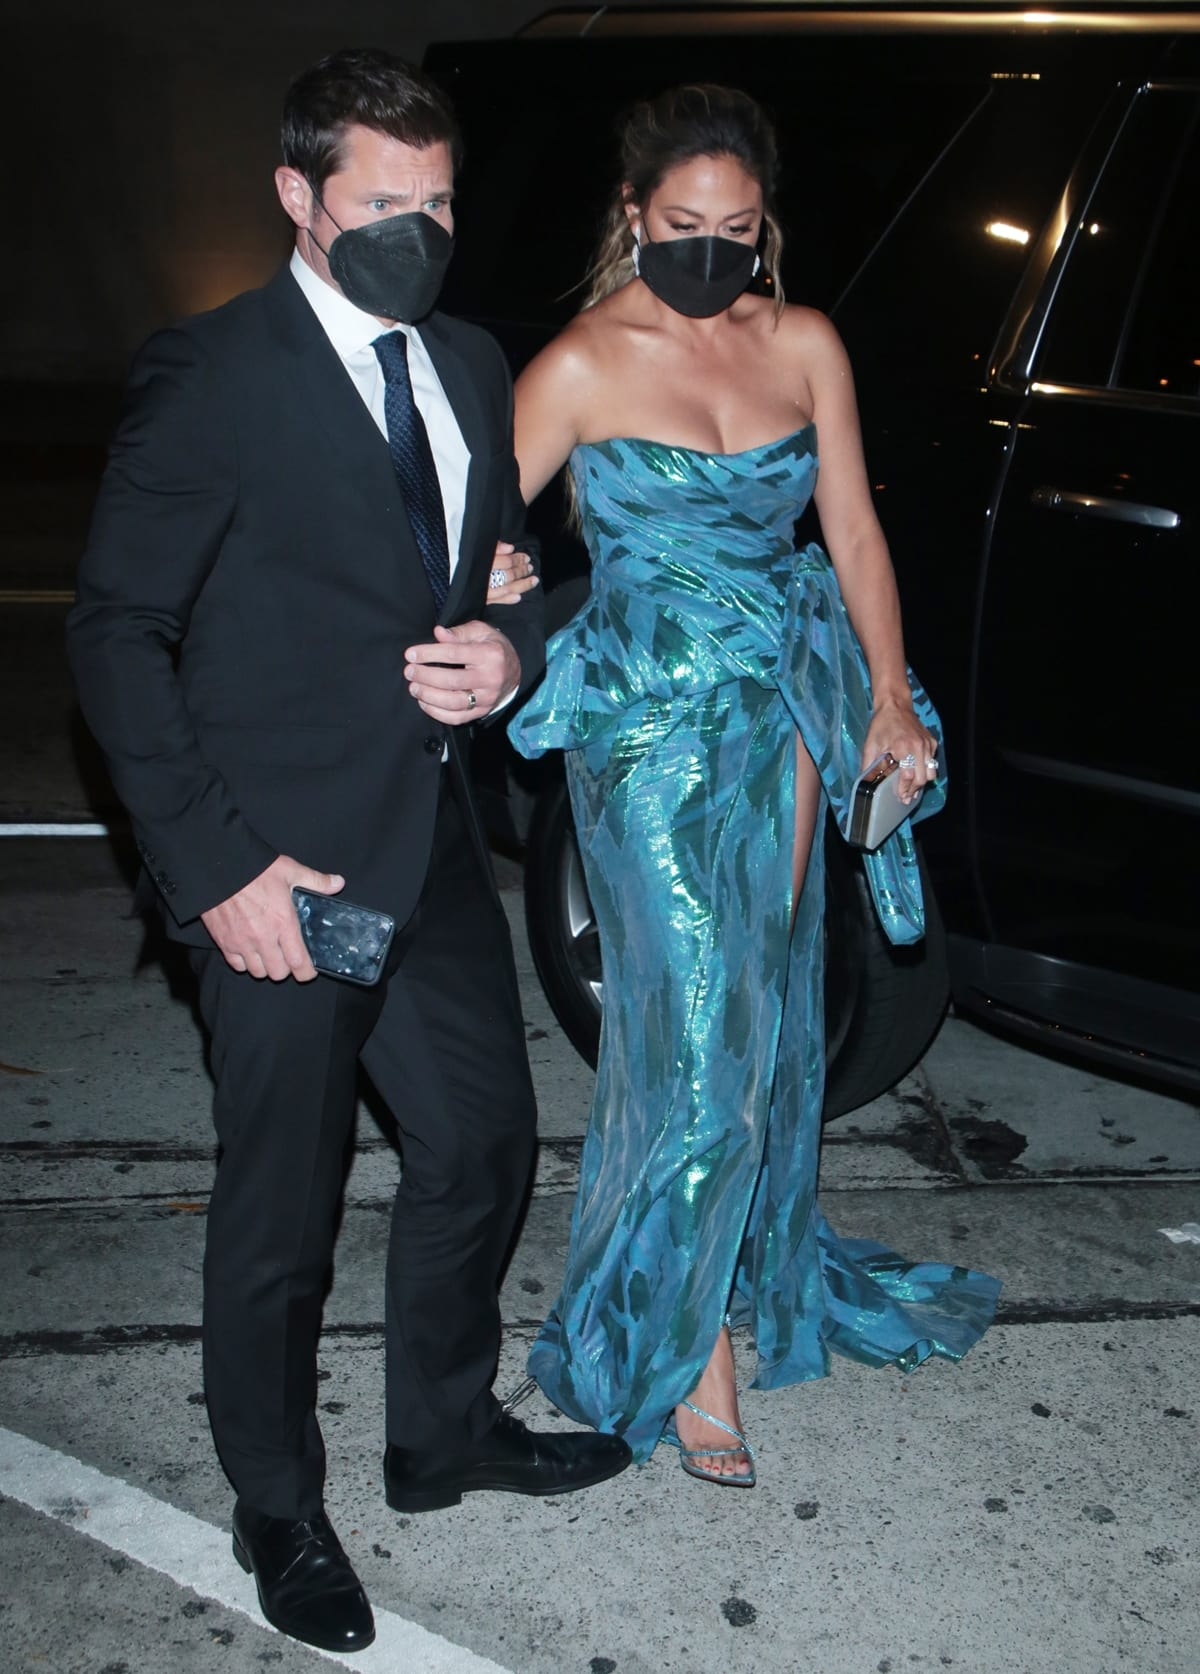 Nick Lachey in a Hugo Boss suit and Vanessa Lachey in a Steven Khalil dress